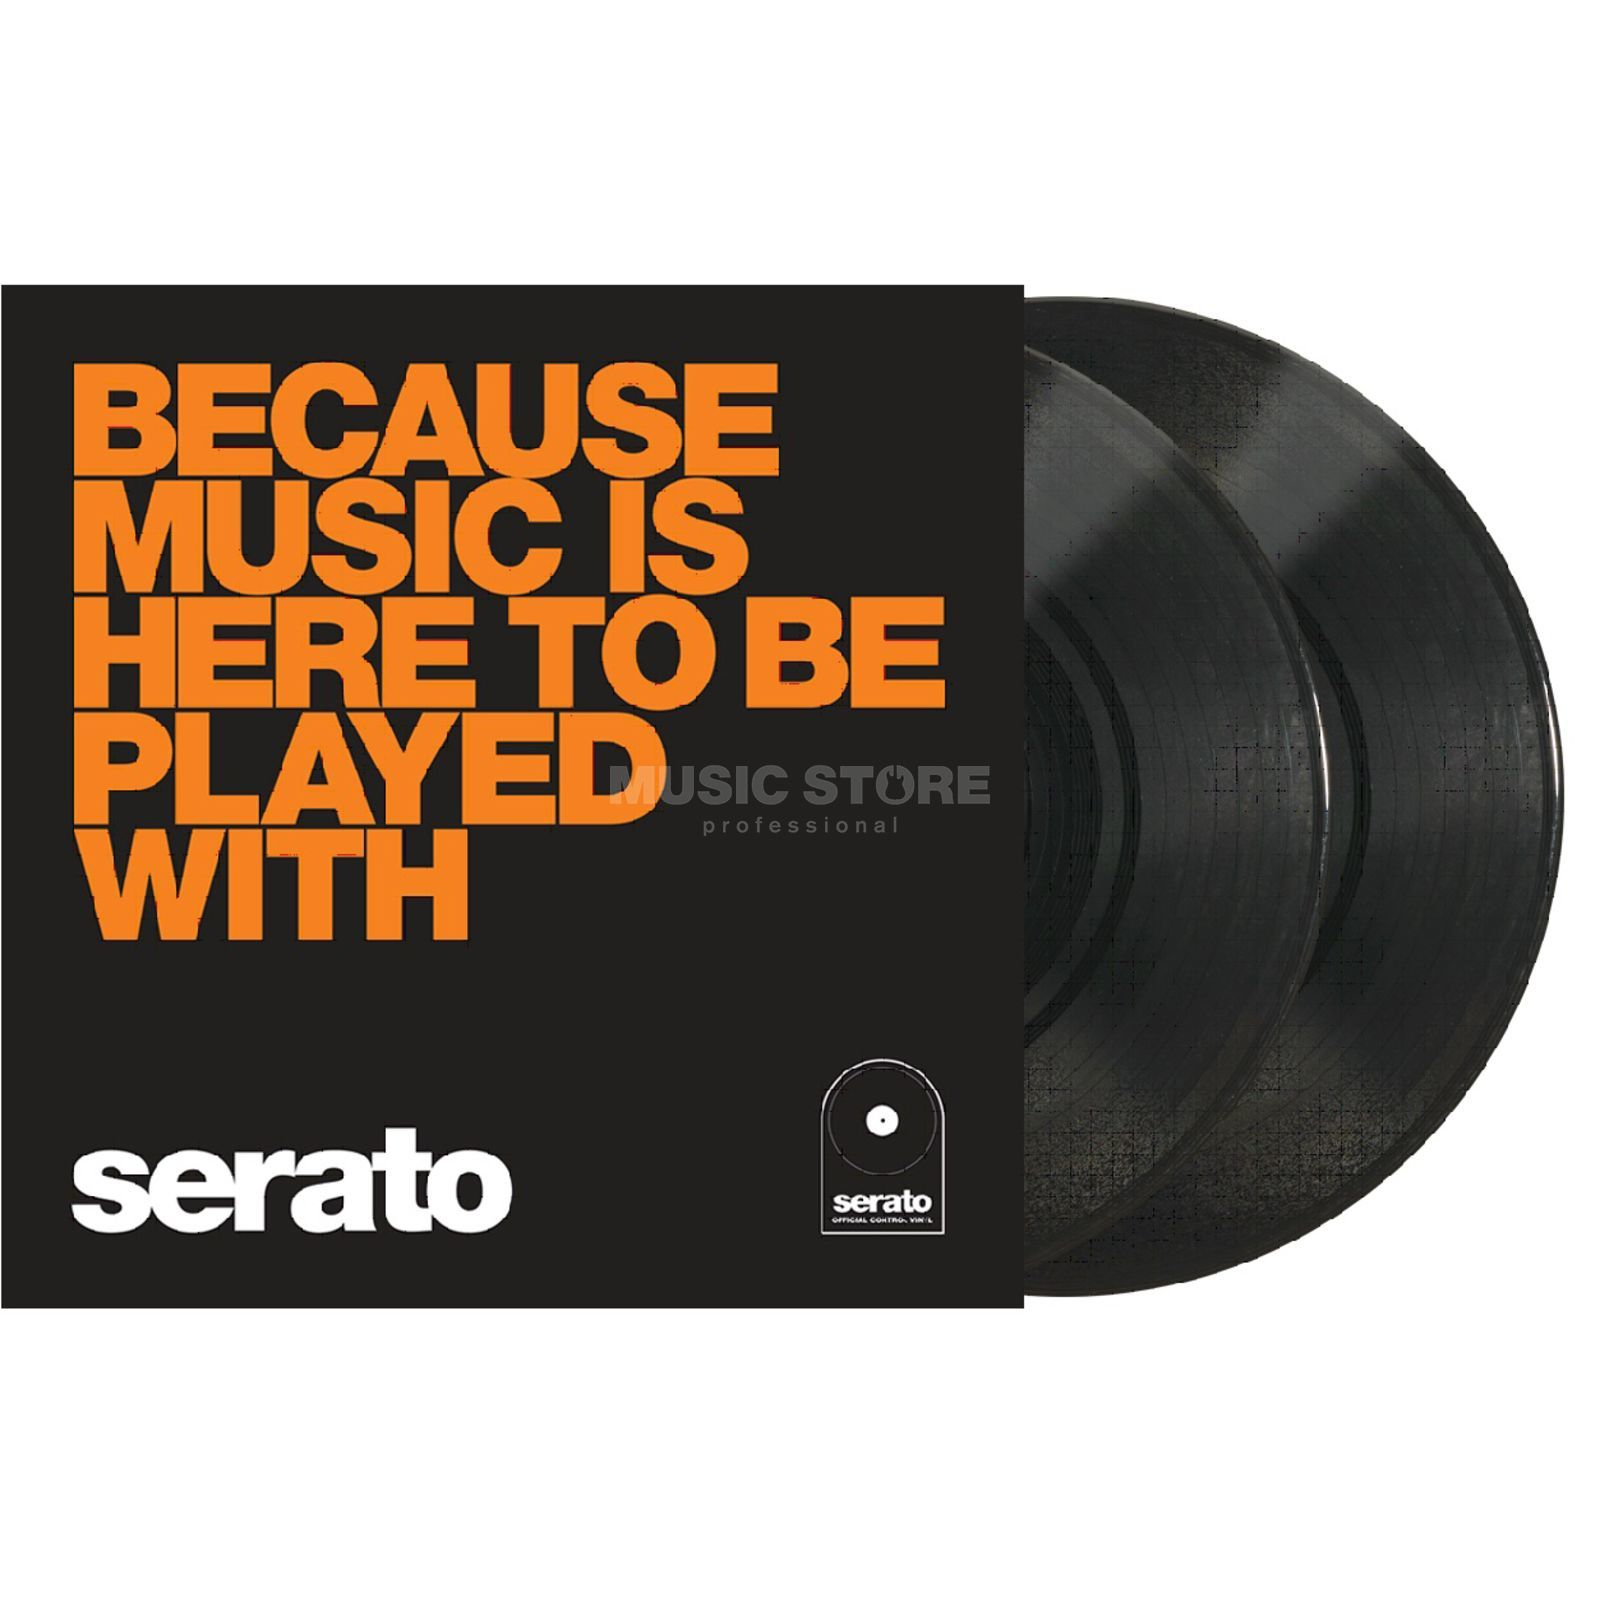 "Serato 10"" Manifesto Control Vinyl x2 (Orange Text) Изображение товара"